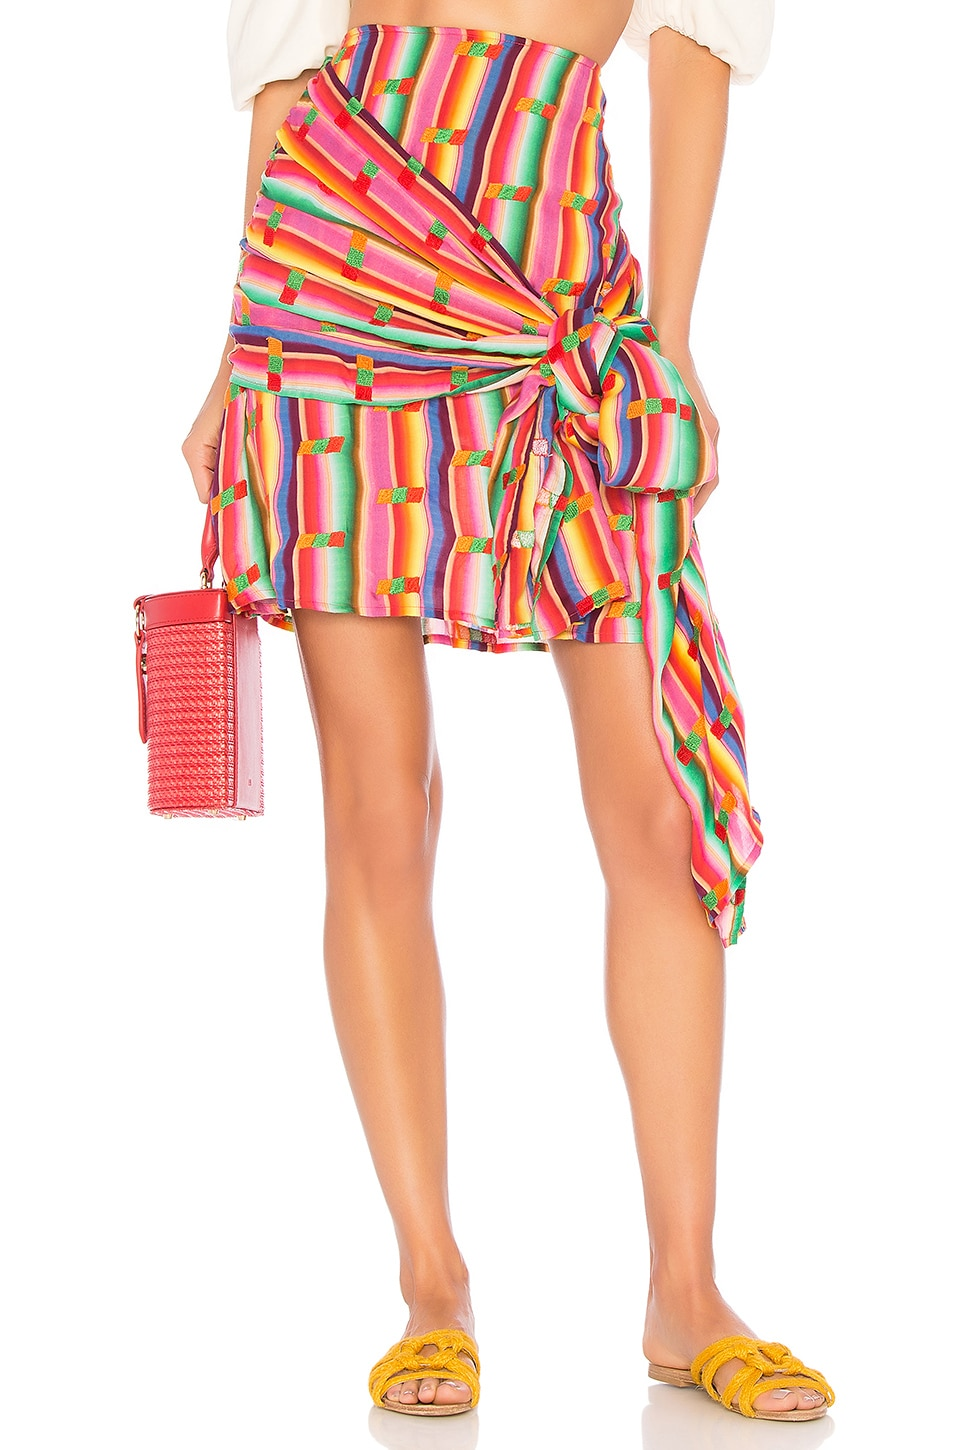 All Things Mochi Roselie Skirt in Rainbow